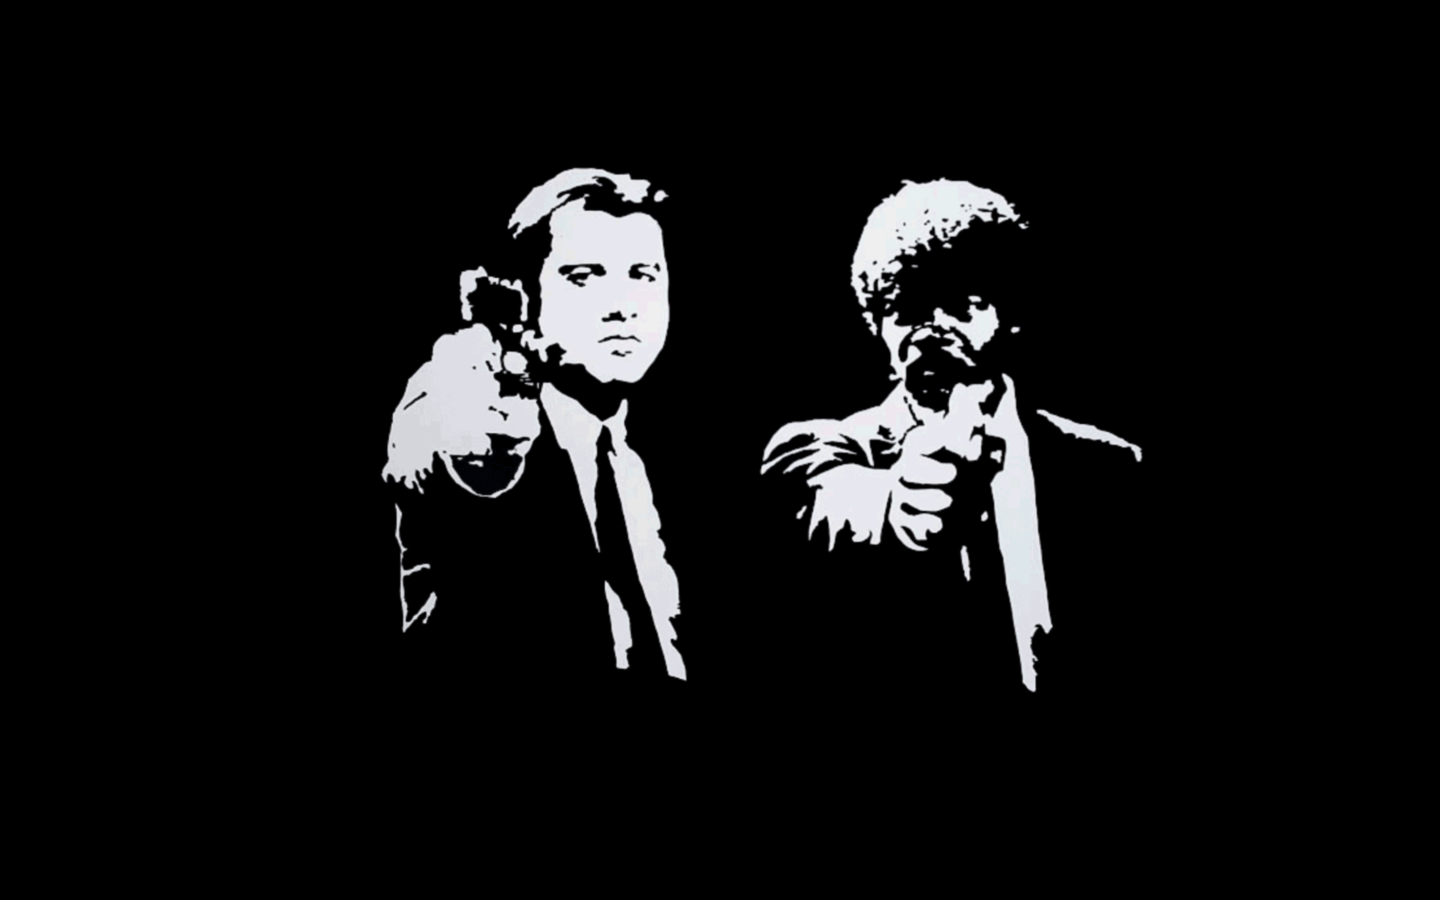 Pulp Fiction Wallpaper Hd 27518 Wallpapers | hdesktopict.